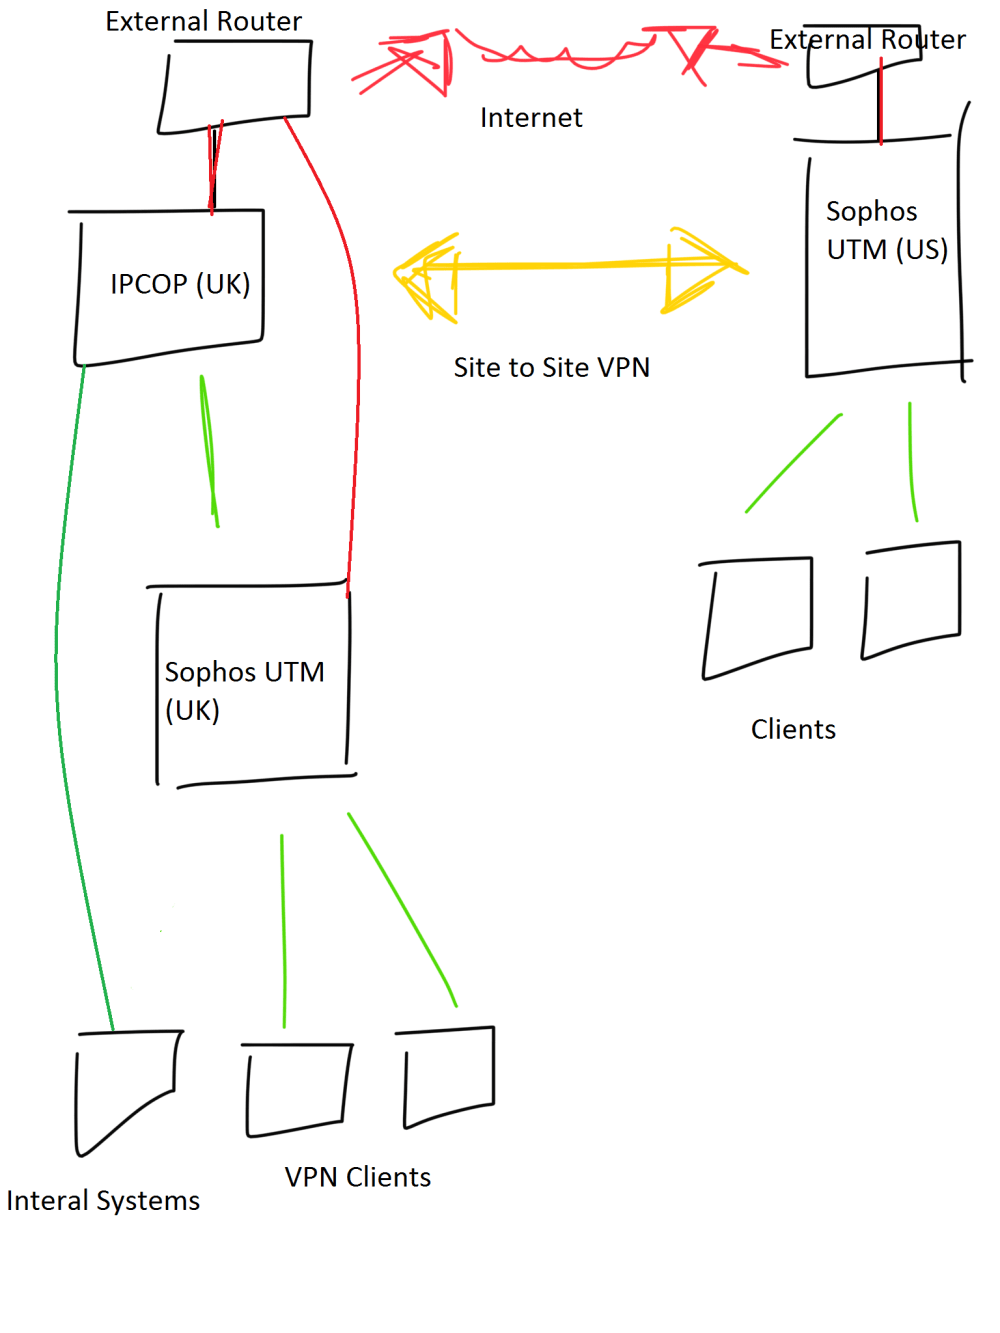 medium resolution of  poor diagram it was done quickly on an iphone whilst on the train hopefully this gives you enough insight though if you need any more detail